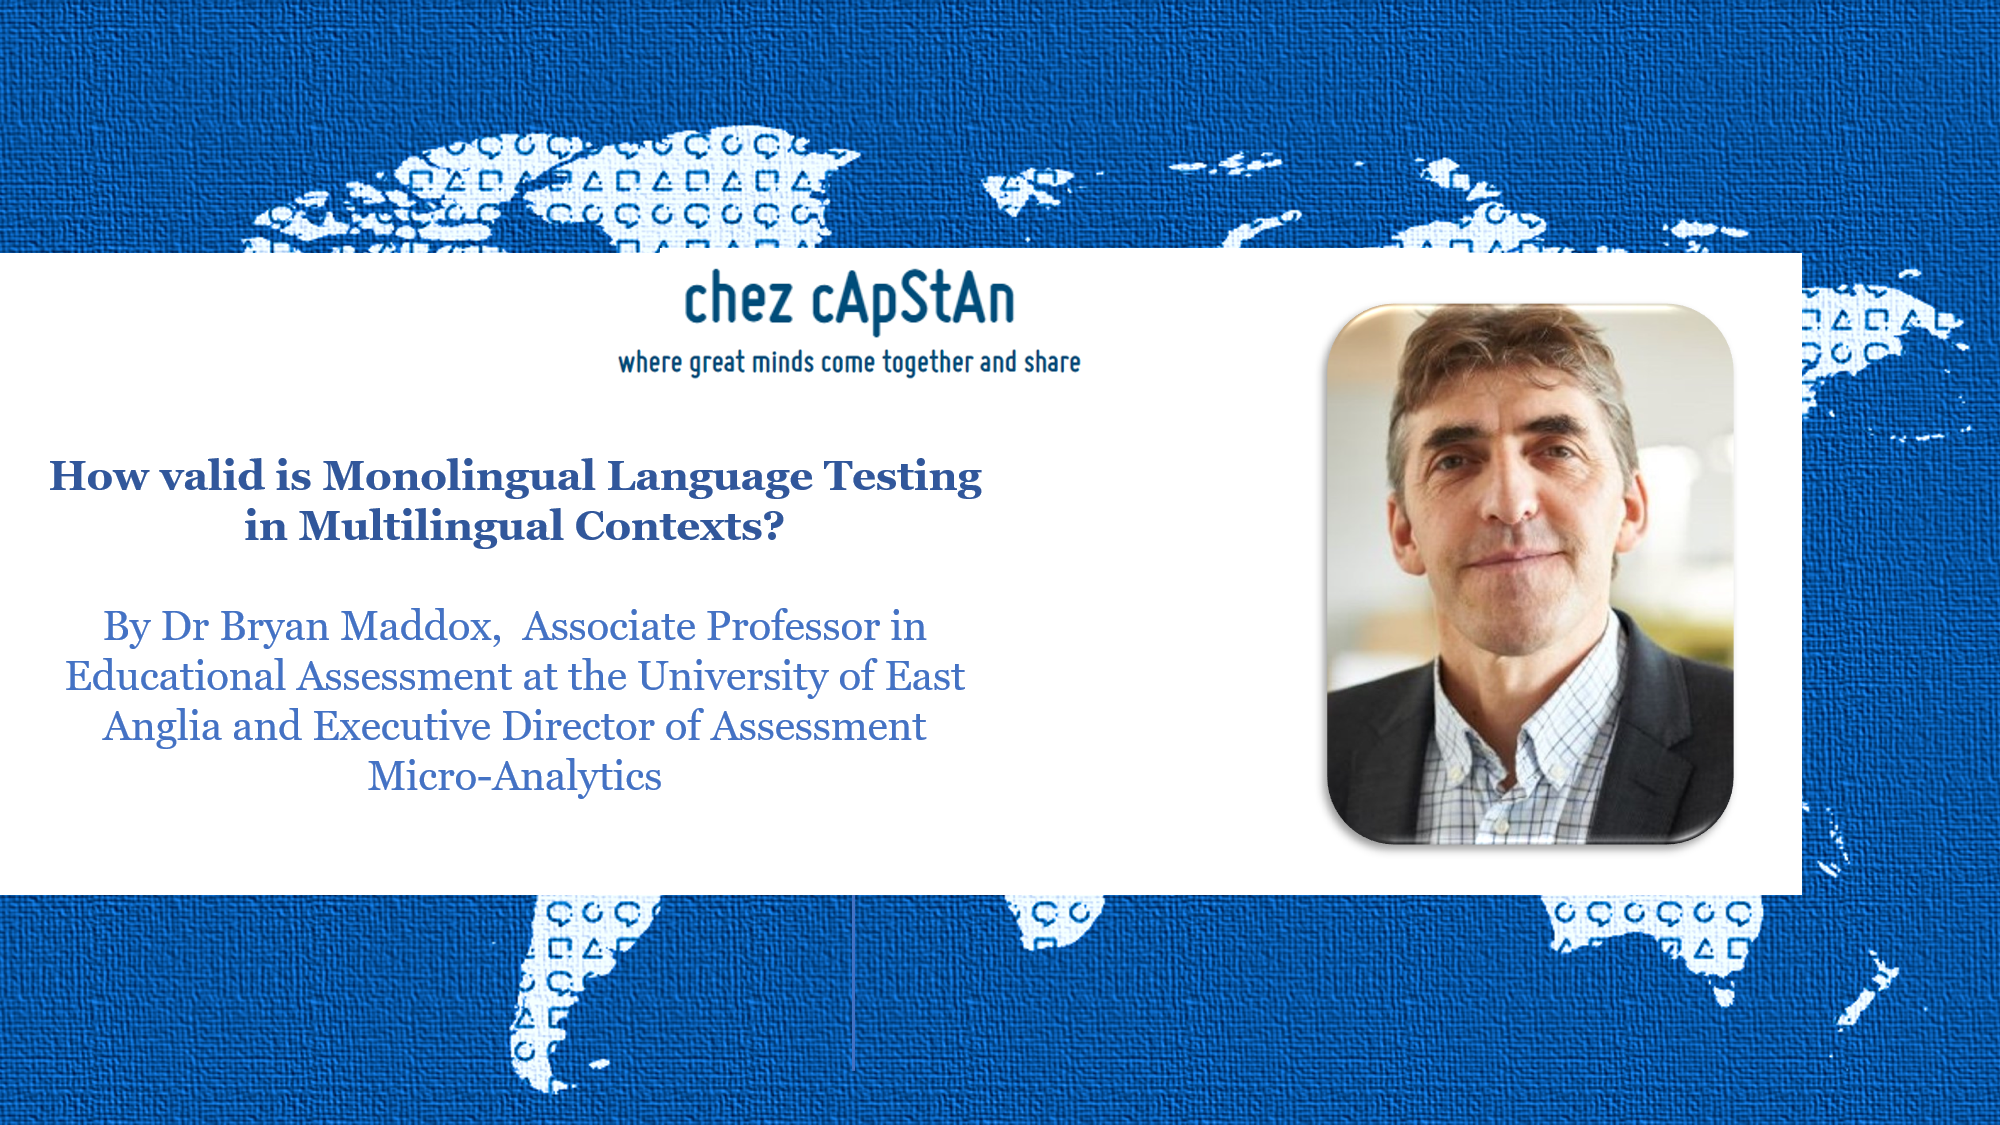 How valid is Monolingual Language Testing in Multilingual Contexts?